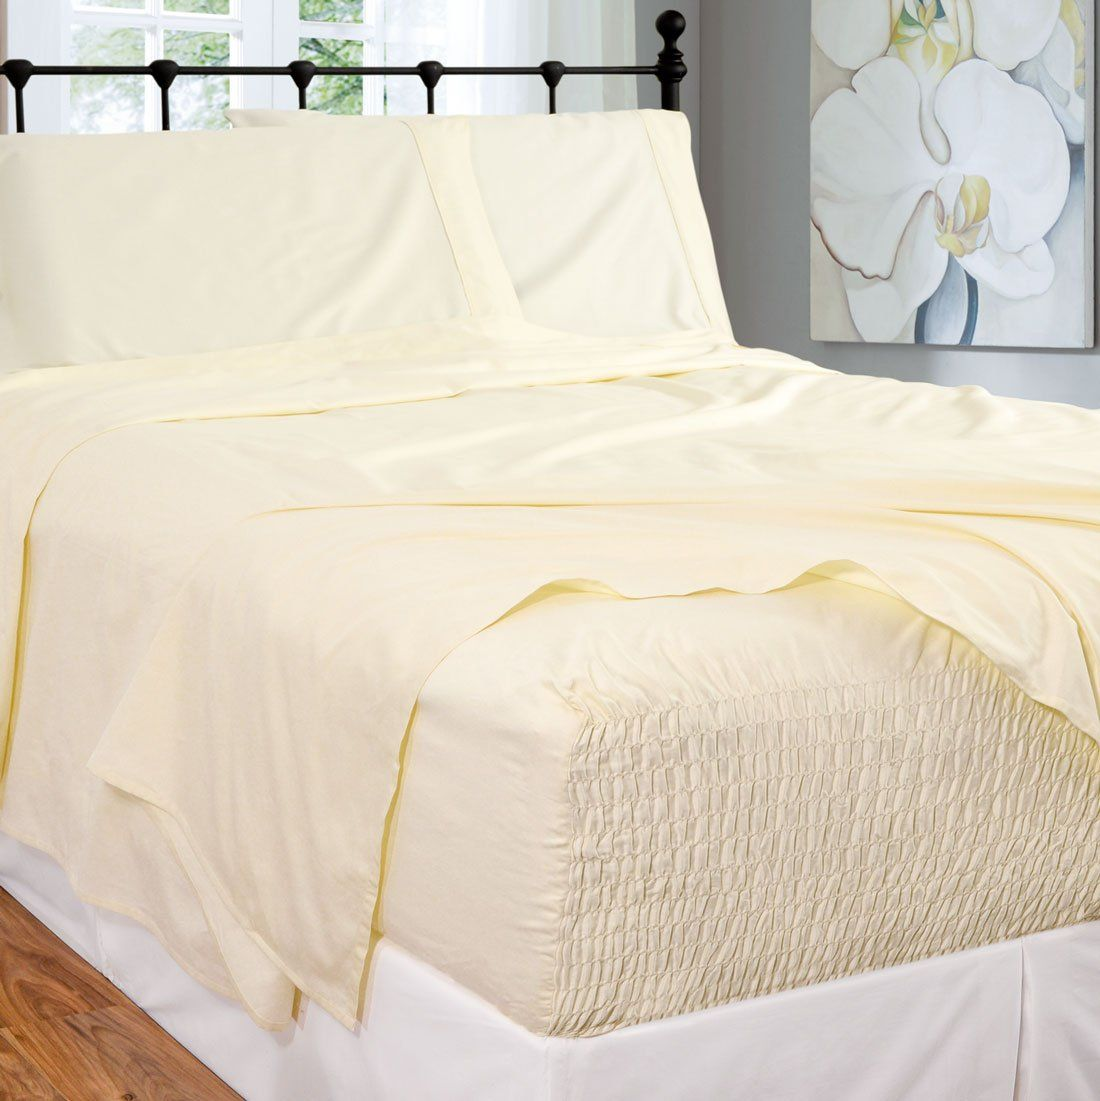 Bed Tite Stretch Fit 300 Thread Count 100 Percent Cotton Ultra Luxurious Deep Pocket Sheet Set Queen Ivory For Mor In 2020 Bed Sheet Sets Full Deep Pocket Sheets